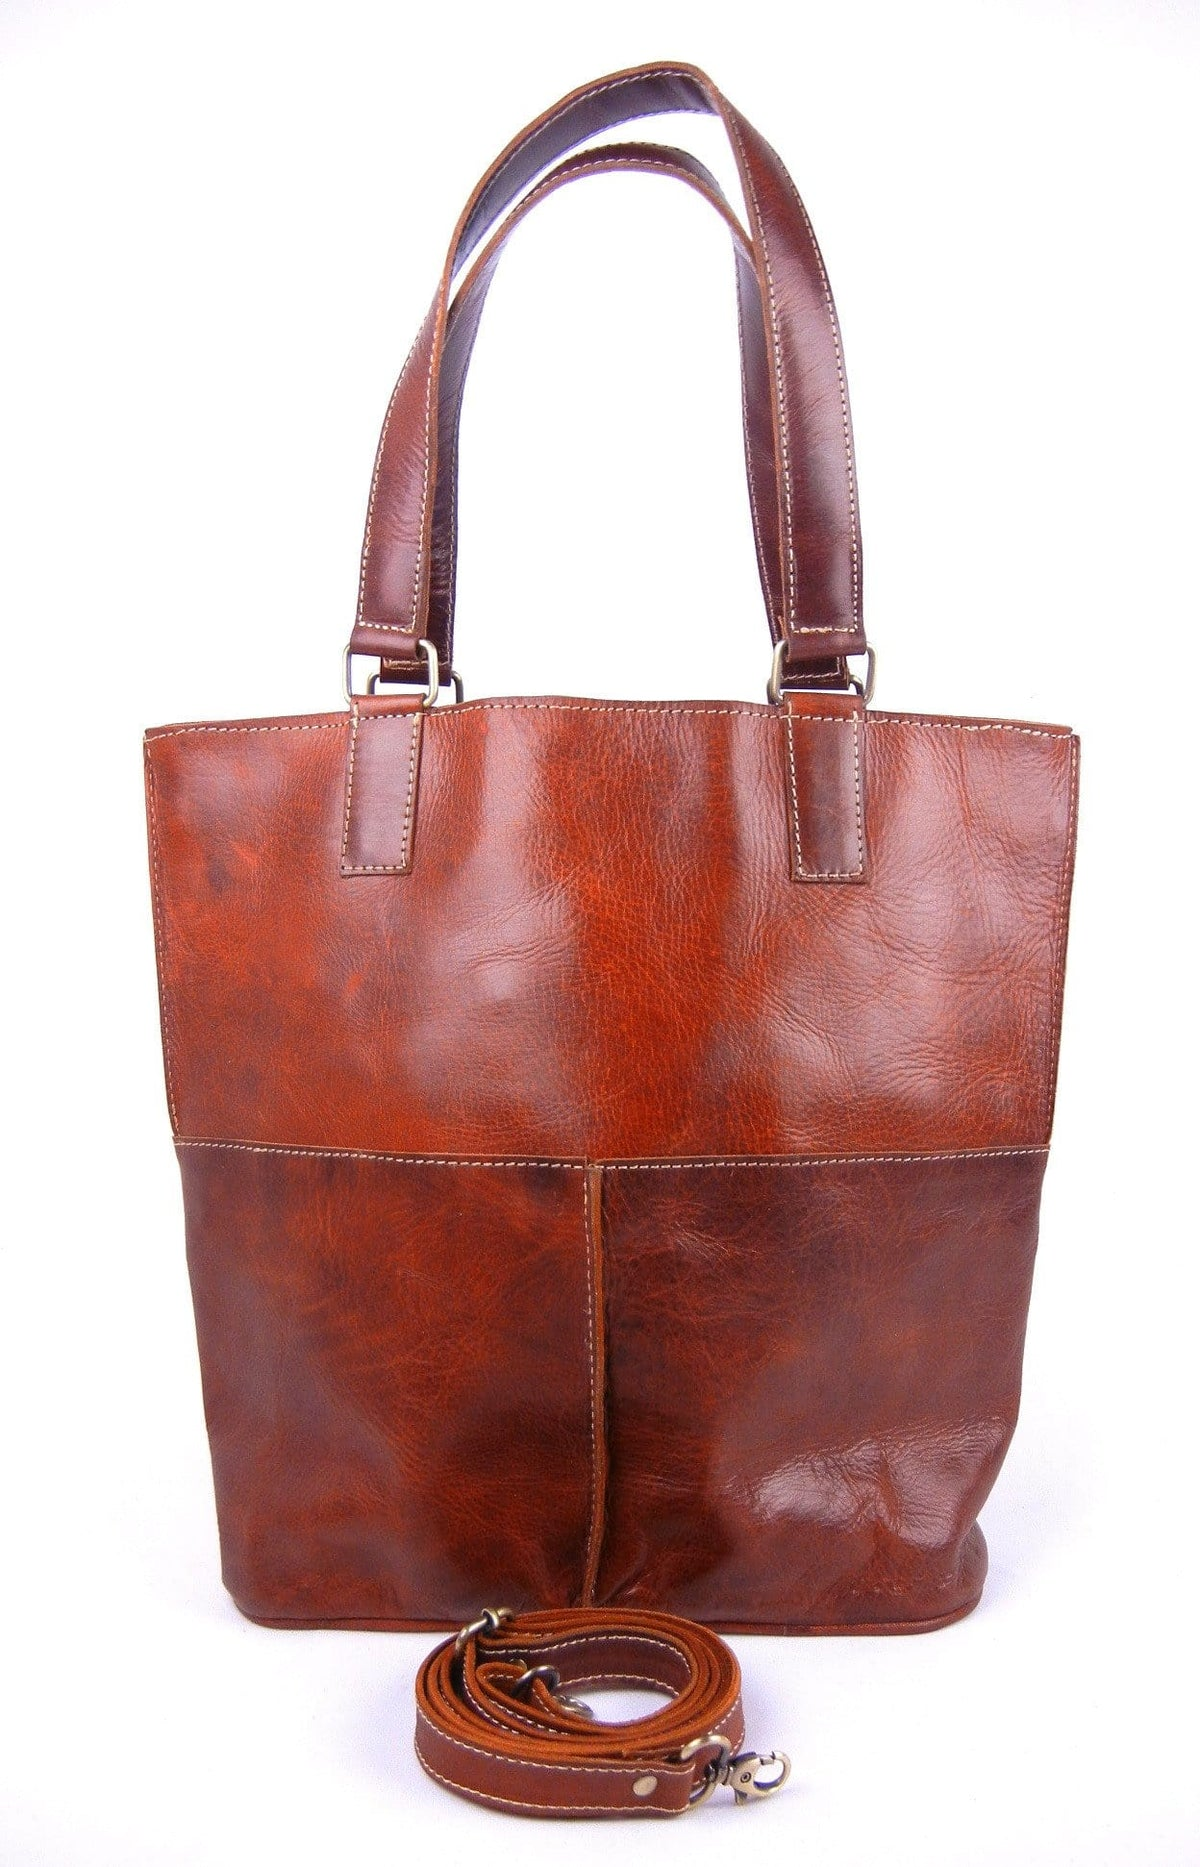 Safiyya - Leather Tote and Crossbody